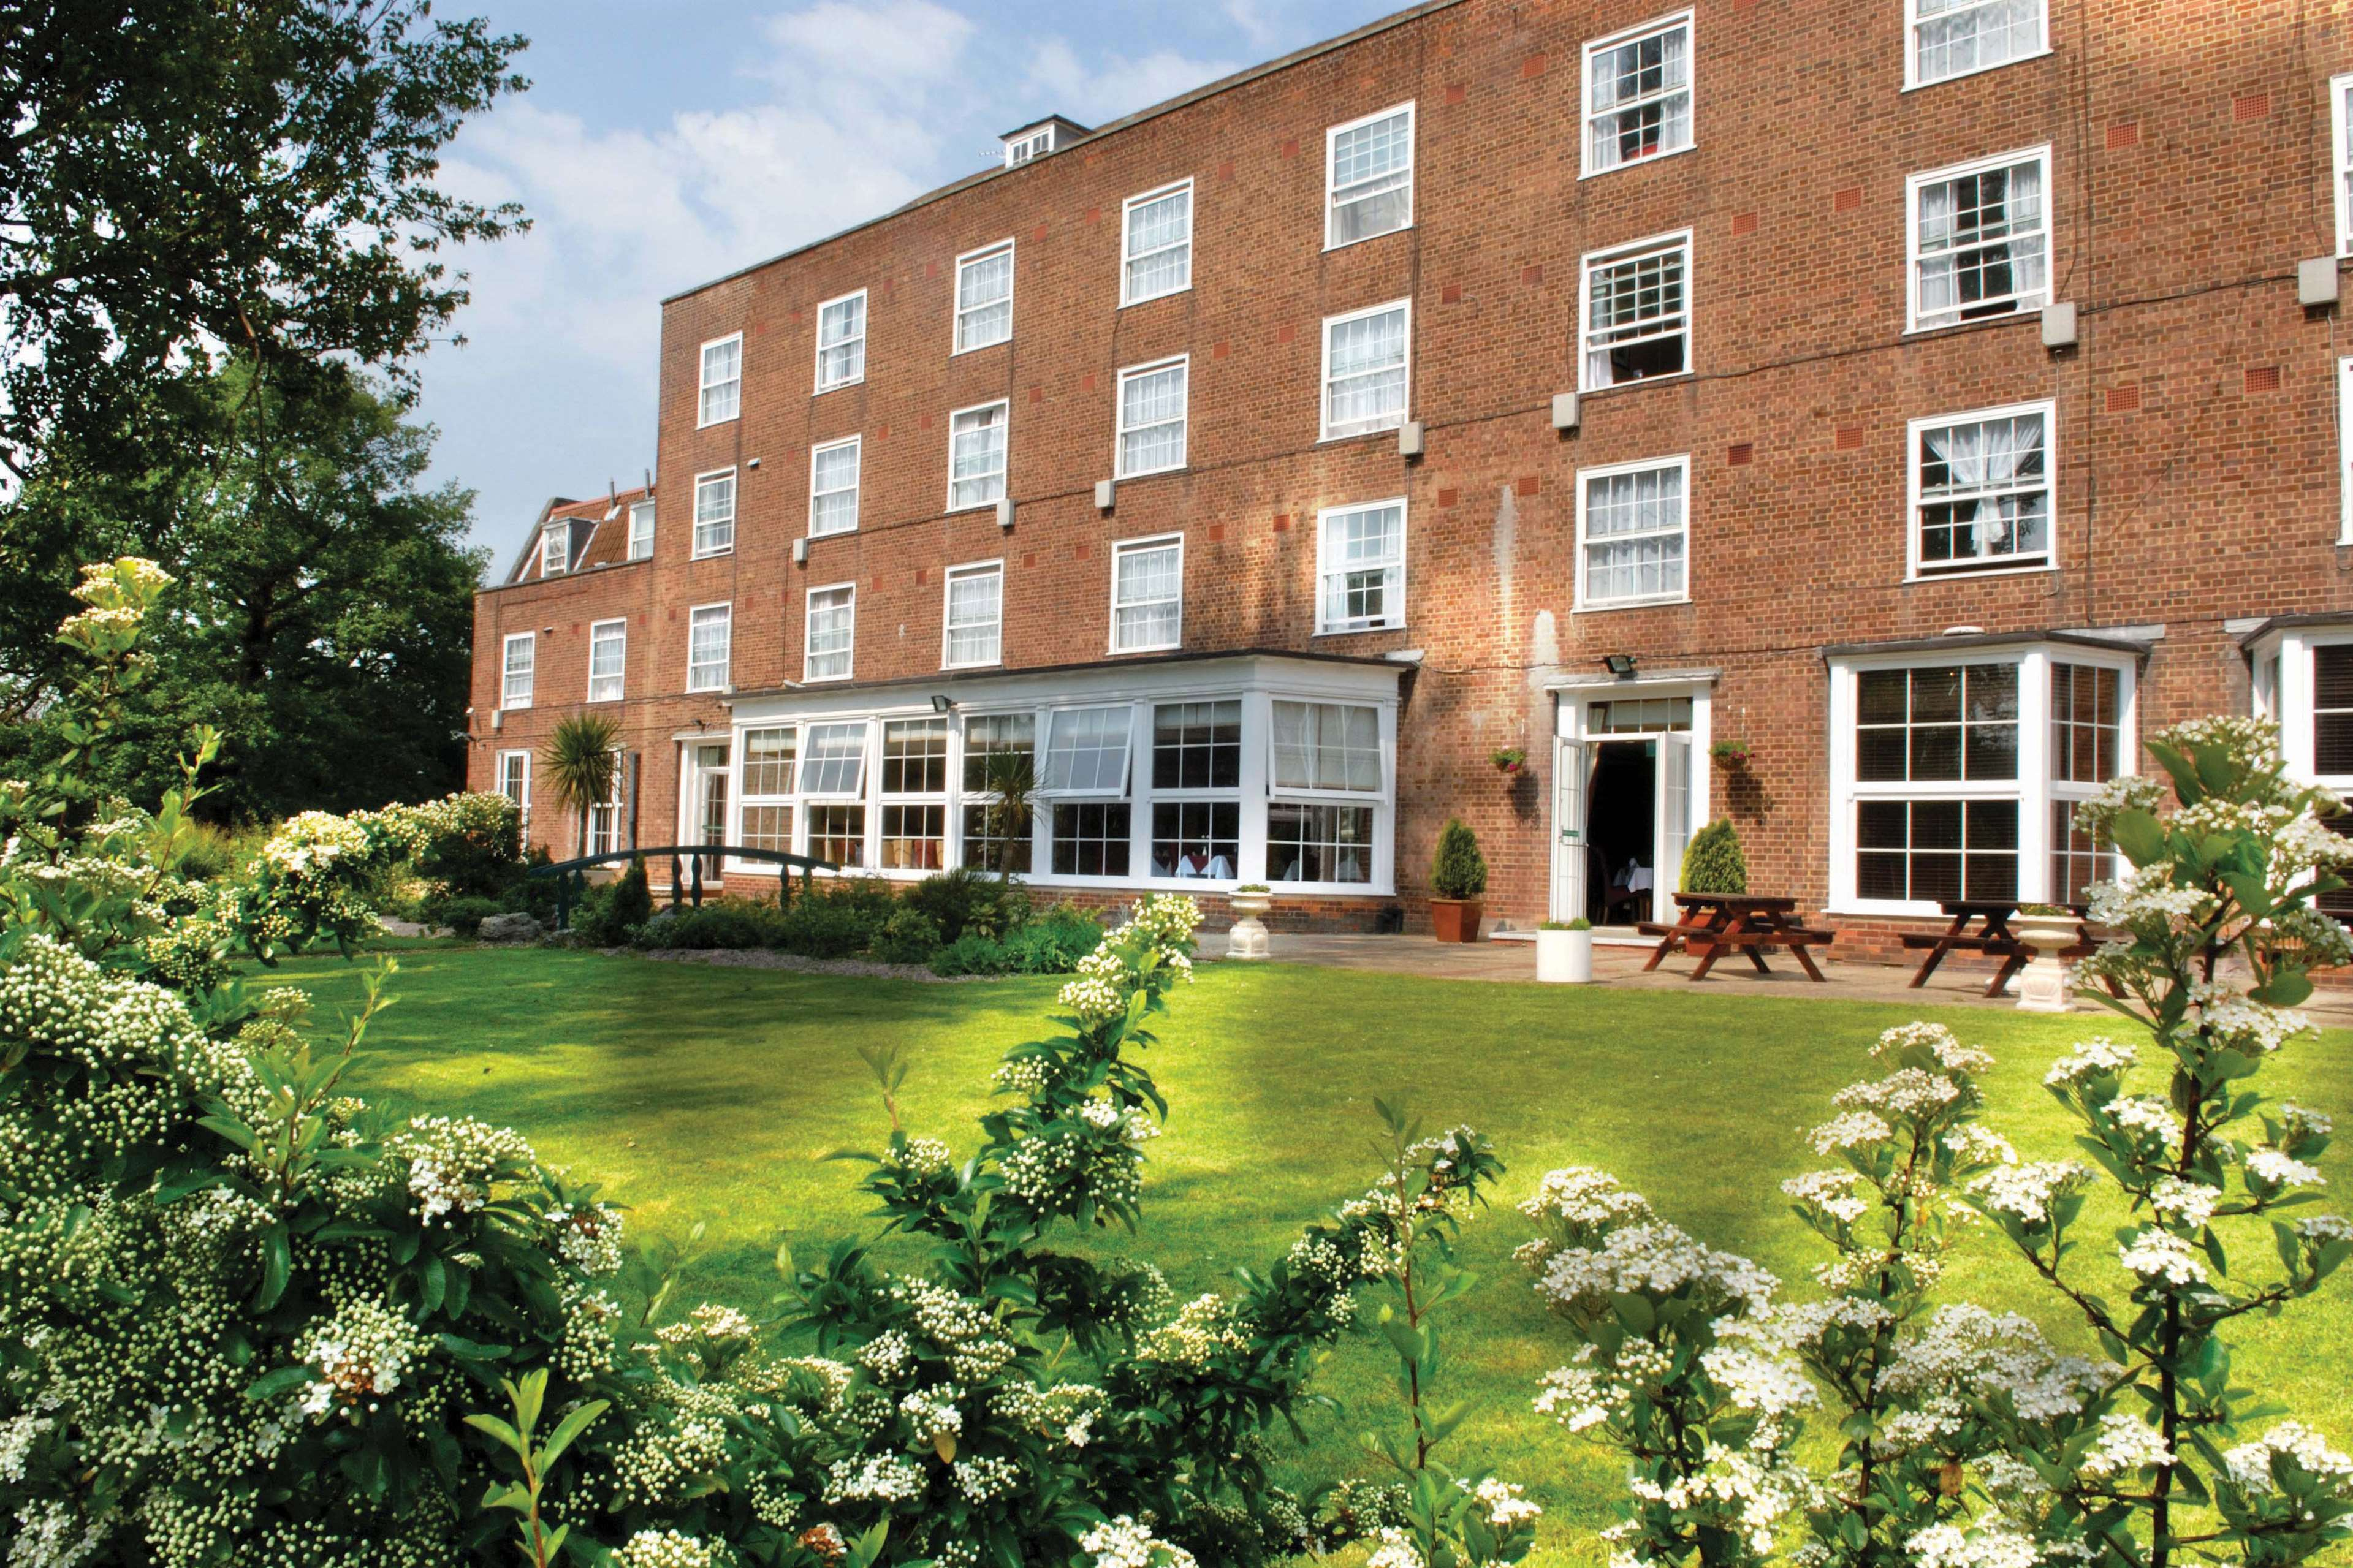 Best Western Welwyn Garden City Homestead Court Hotel Hotels In Welwyn Garden City Al7 4lx